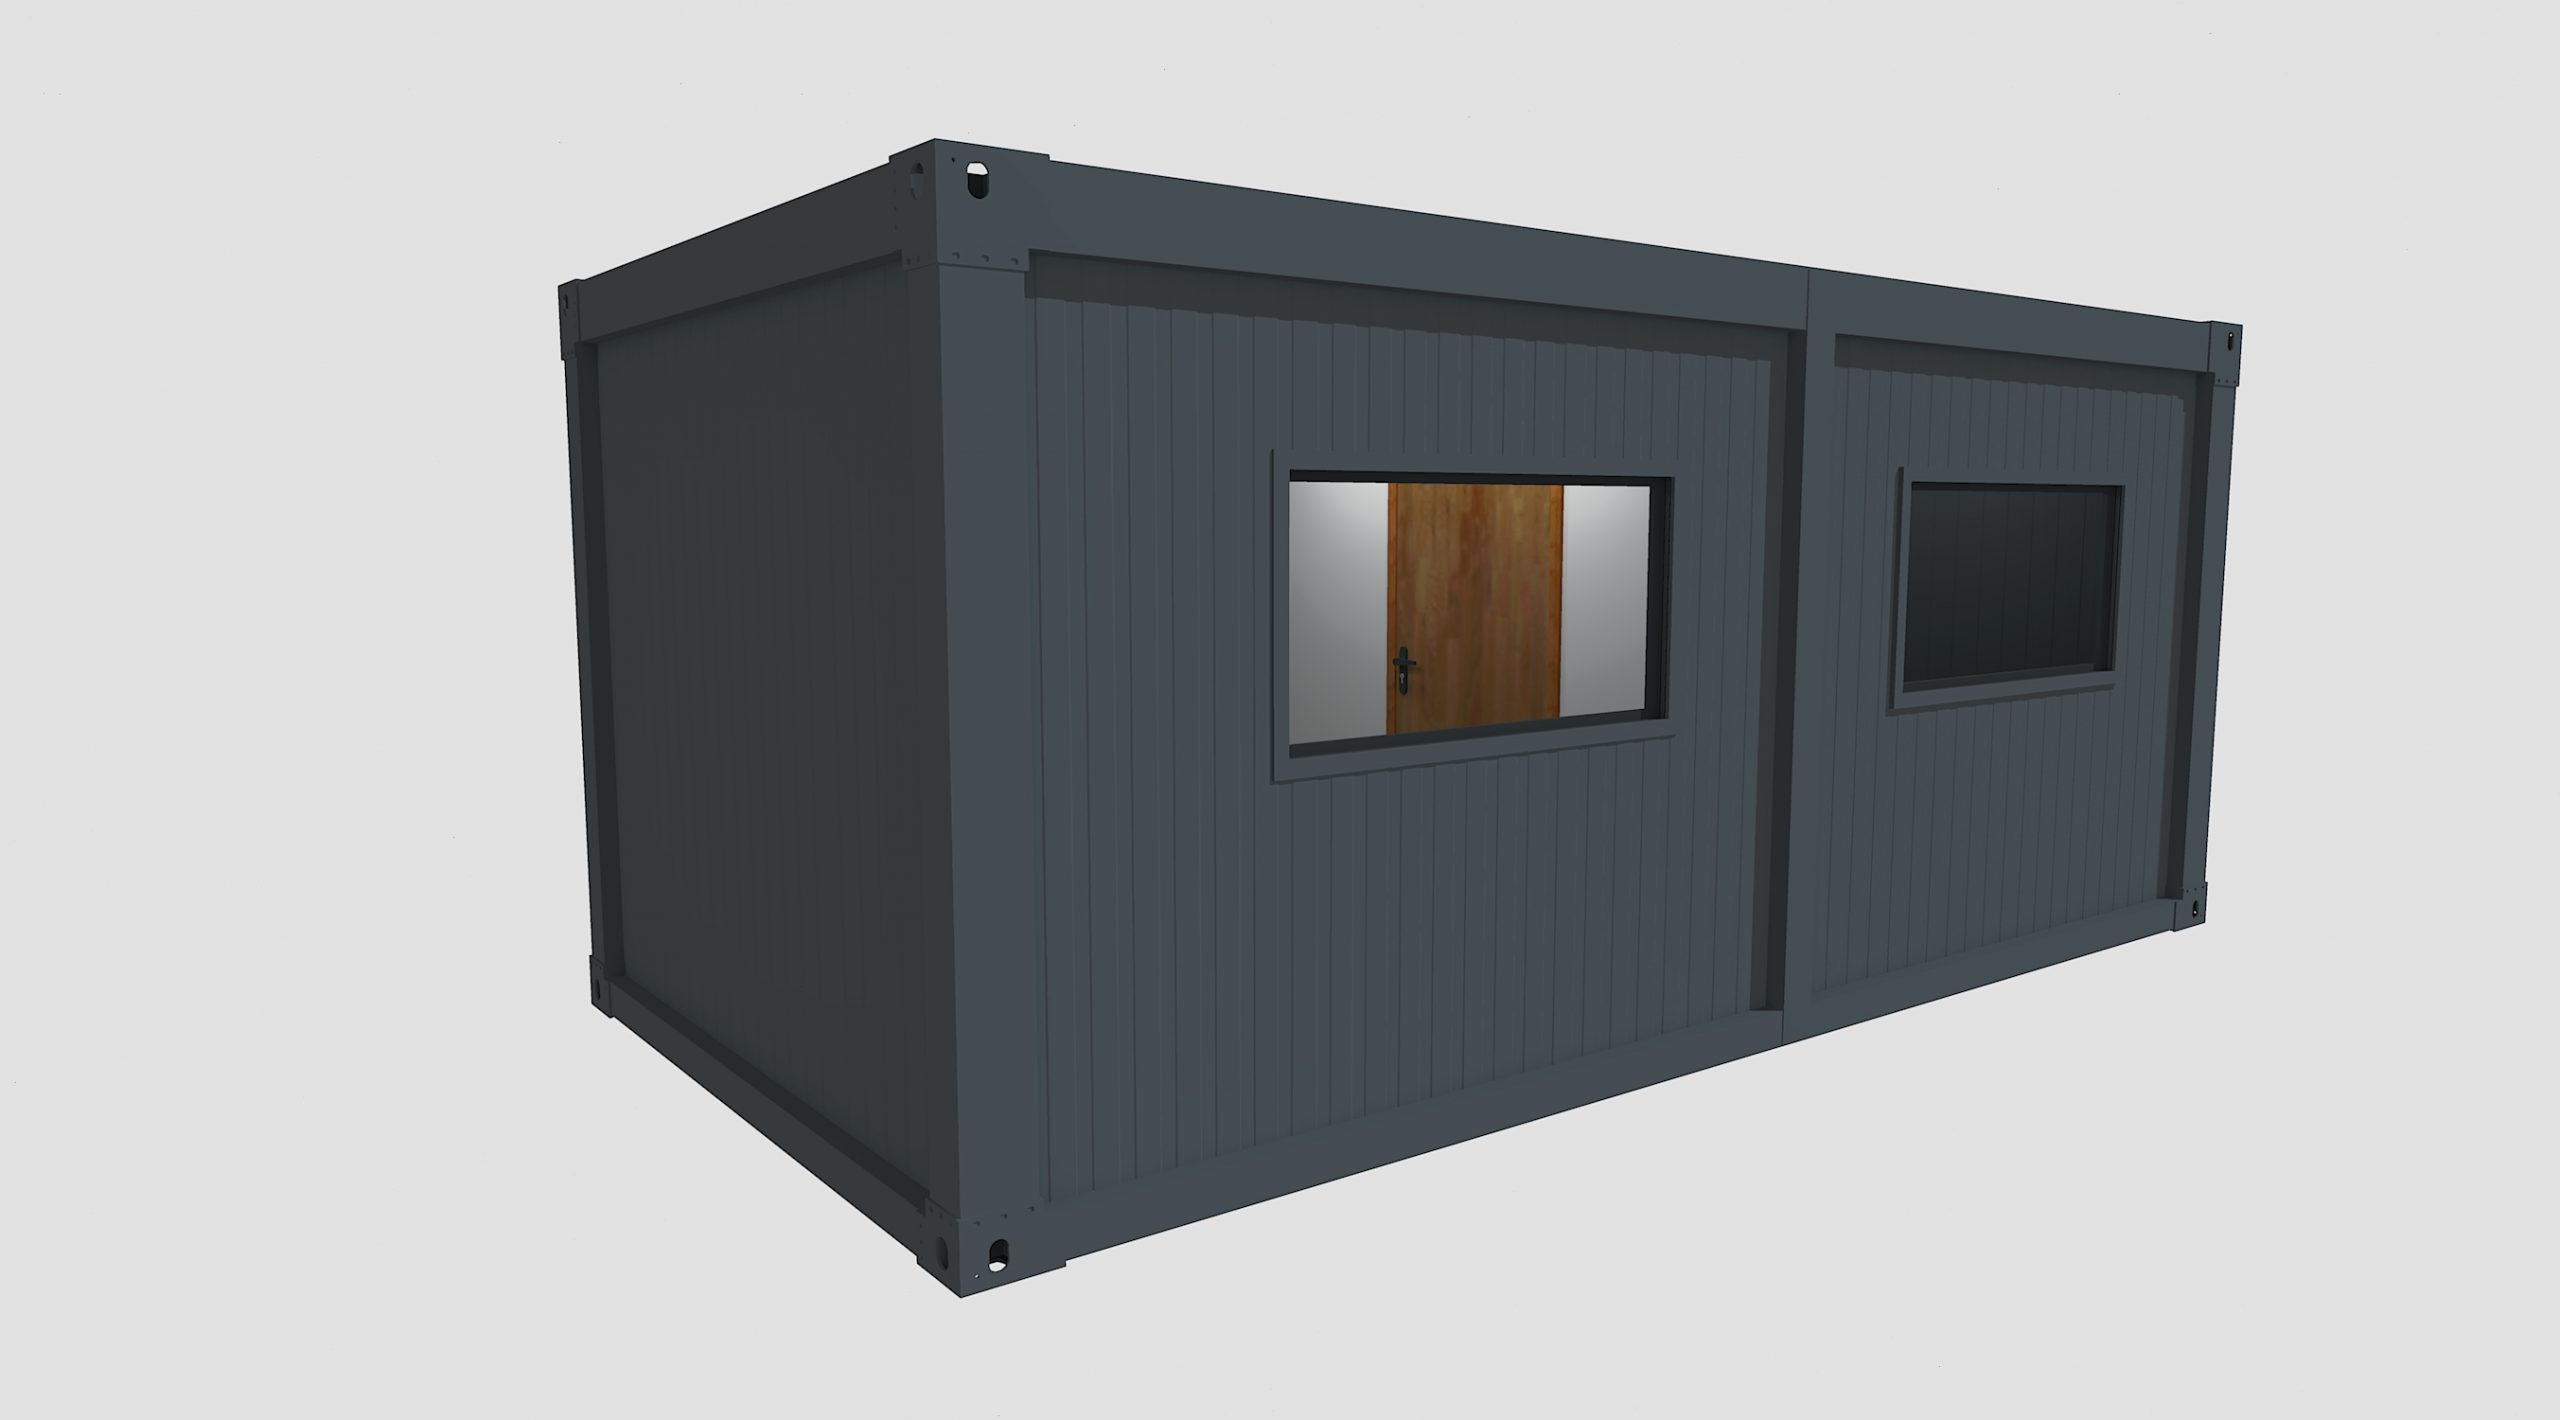 3D mock up of grey steel security cabin with two windows